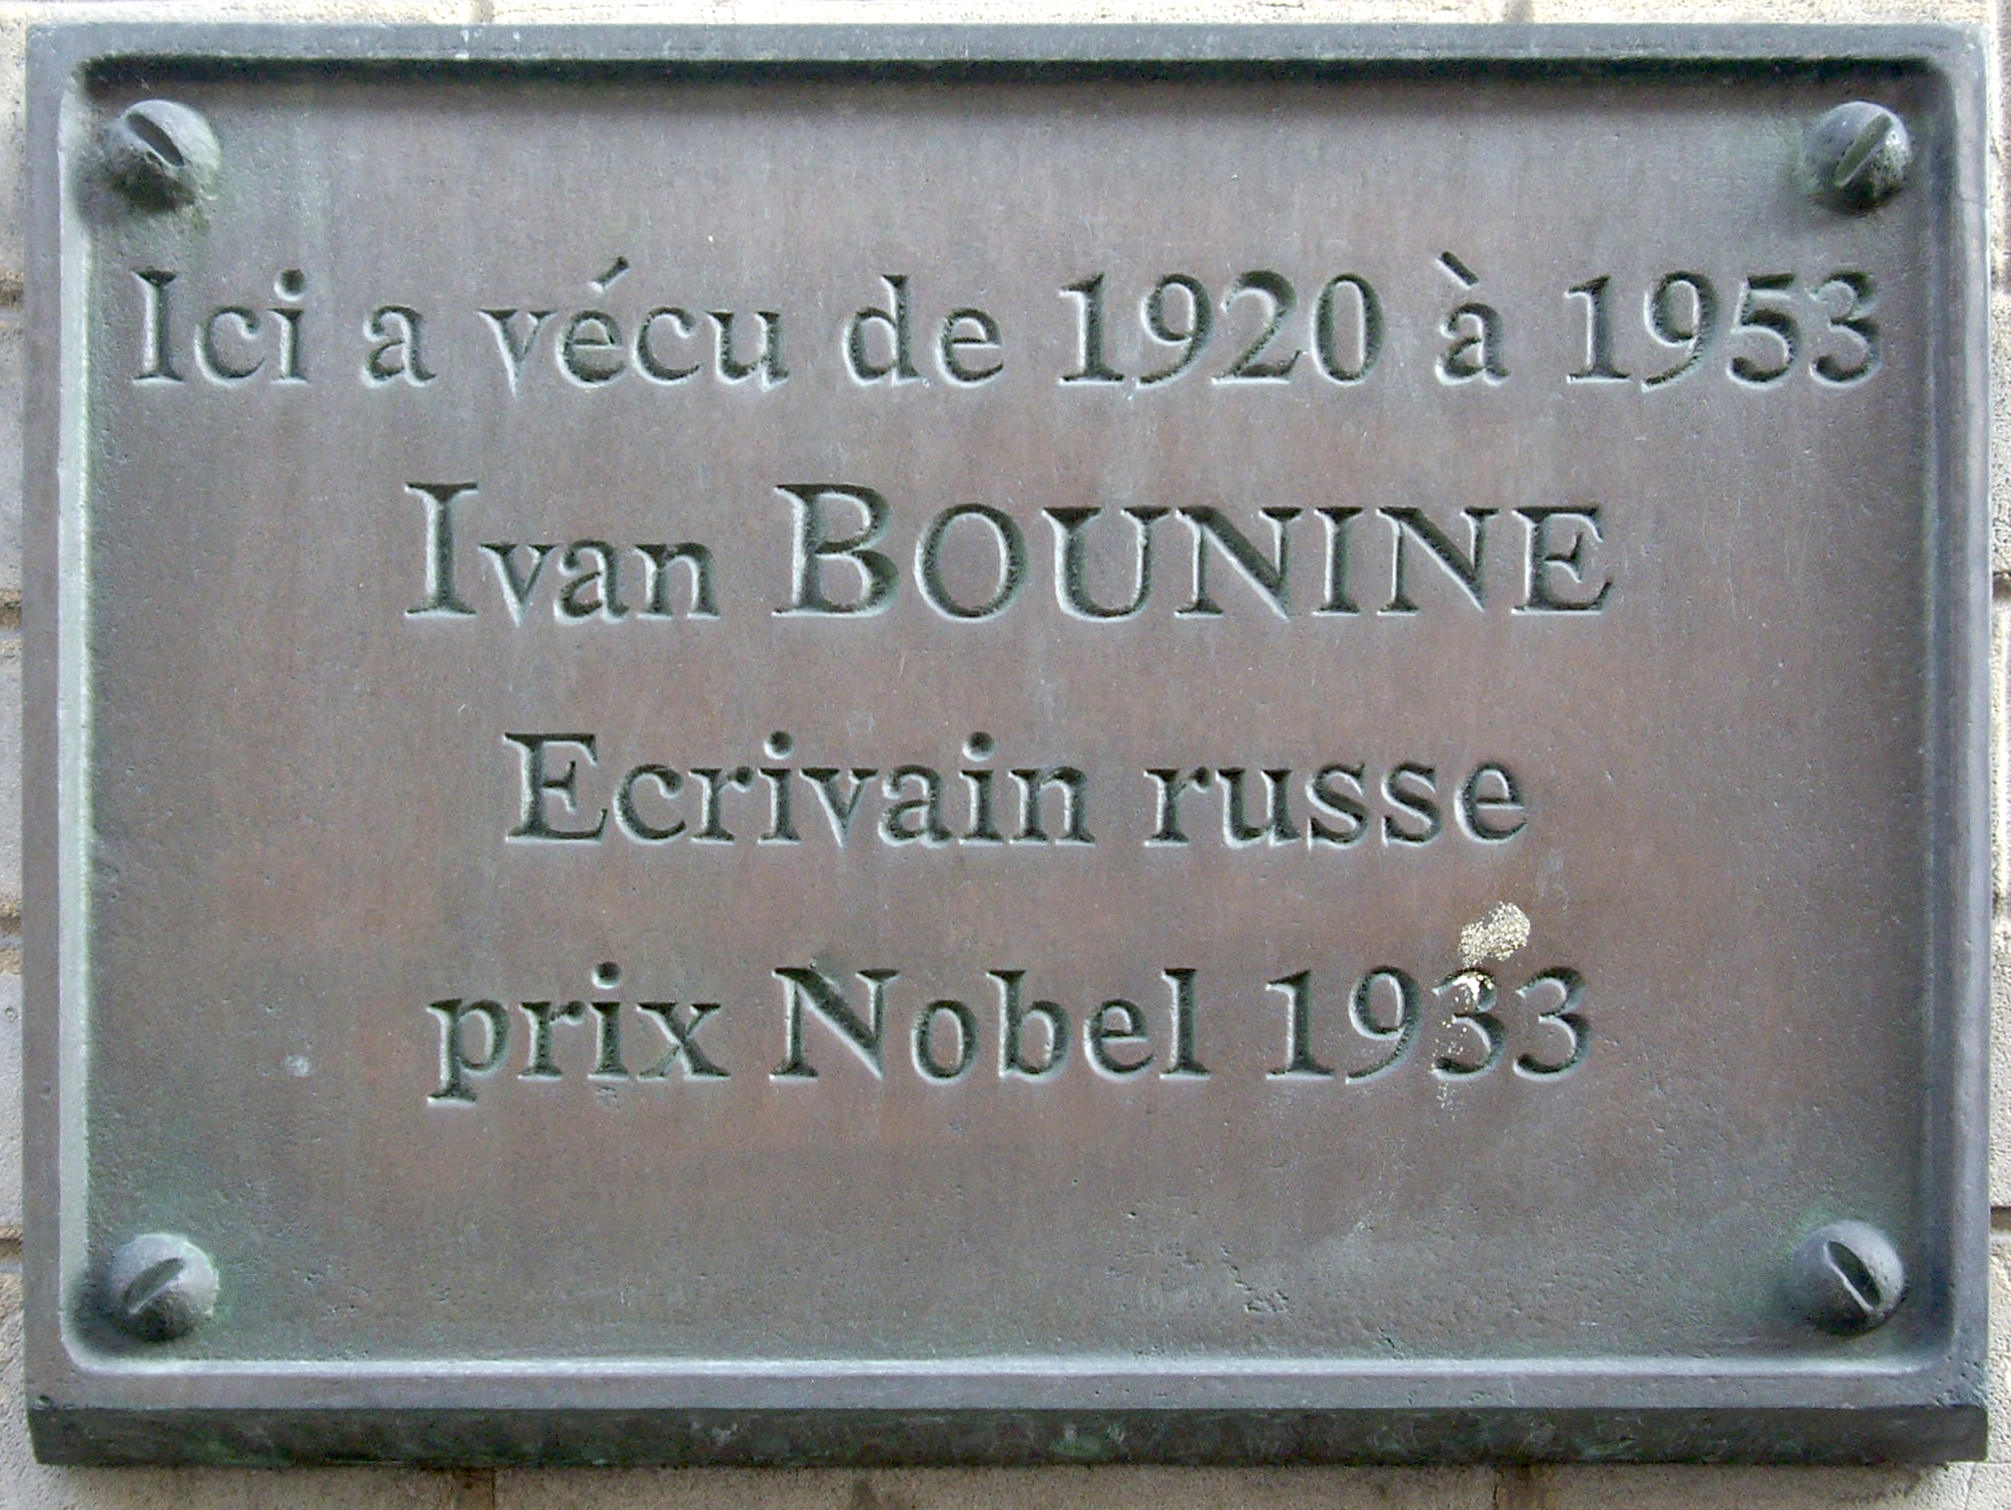 https://upload.wikimedia.org/wikipedia/commons/6/63/Plaque_Ivan_Bounine,_1_rue_Jacques-Offenbach,_Paris_16.jpg